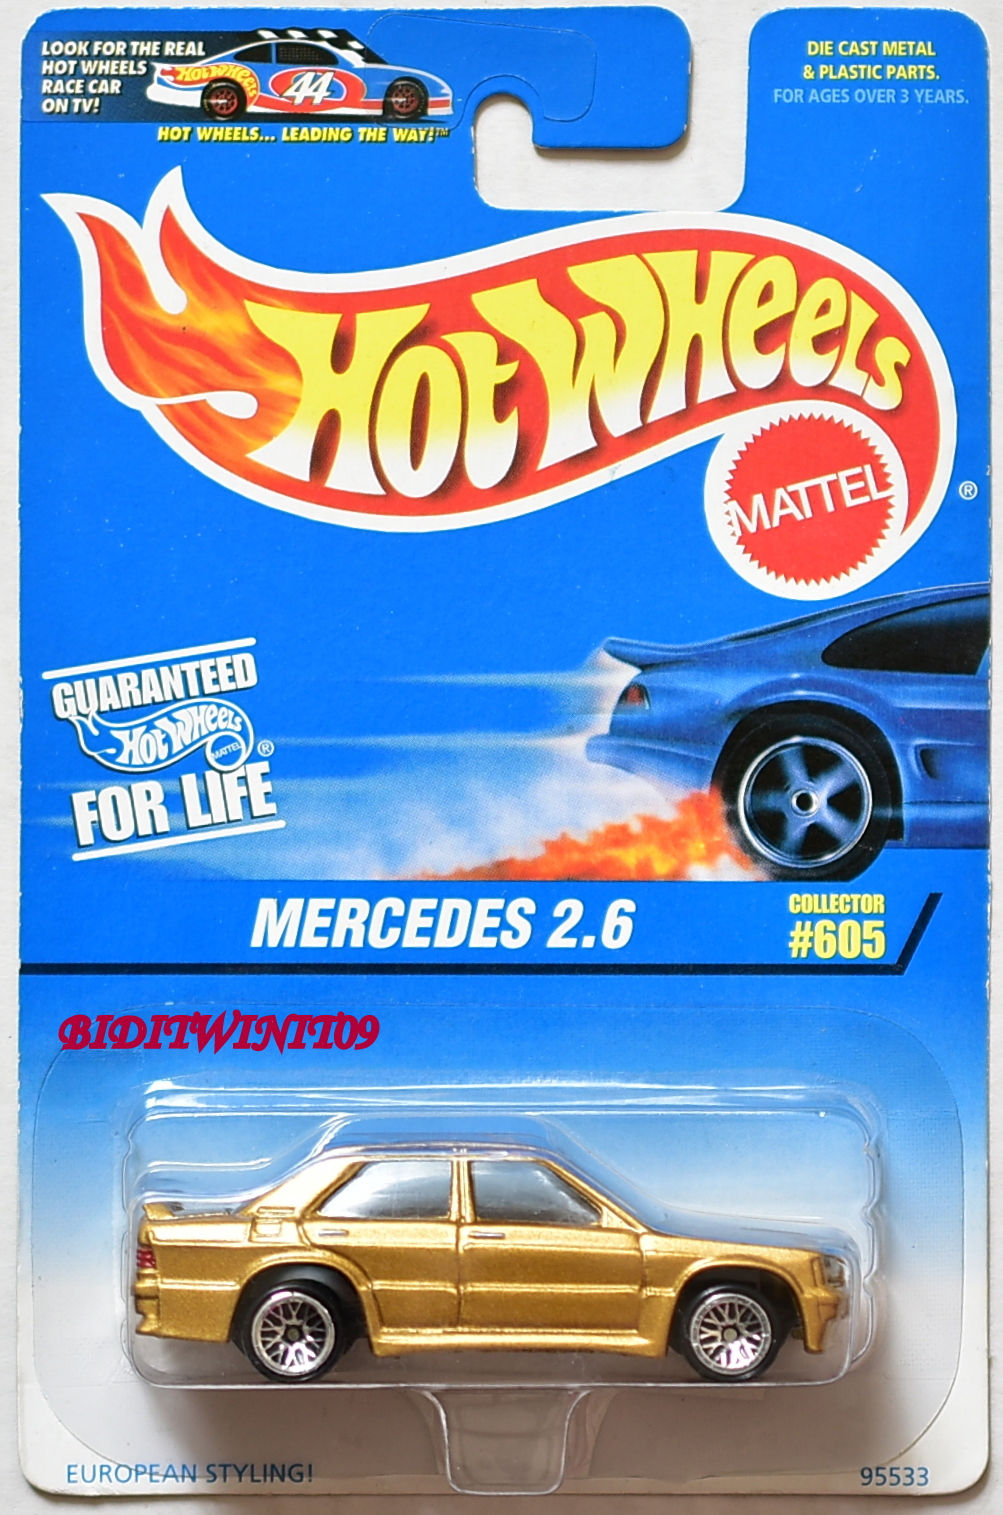 HOT WHEELS 1997 MERCEDES 2.6 COLLECTOR #605